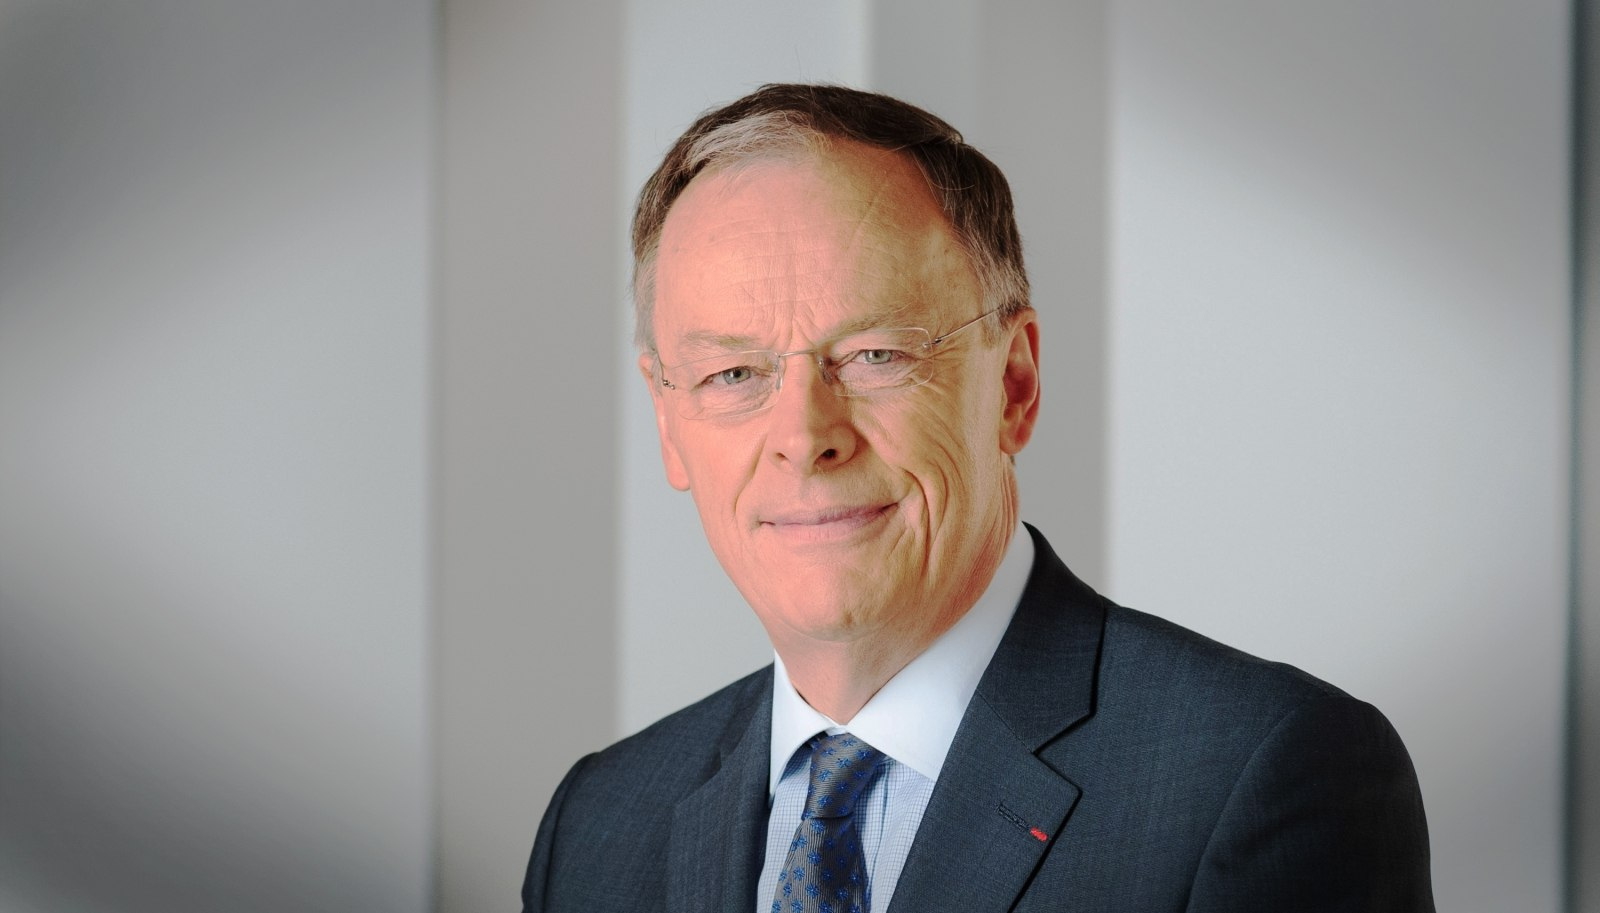 Vincent de Rivaz profile